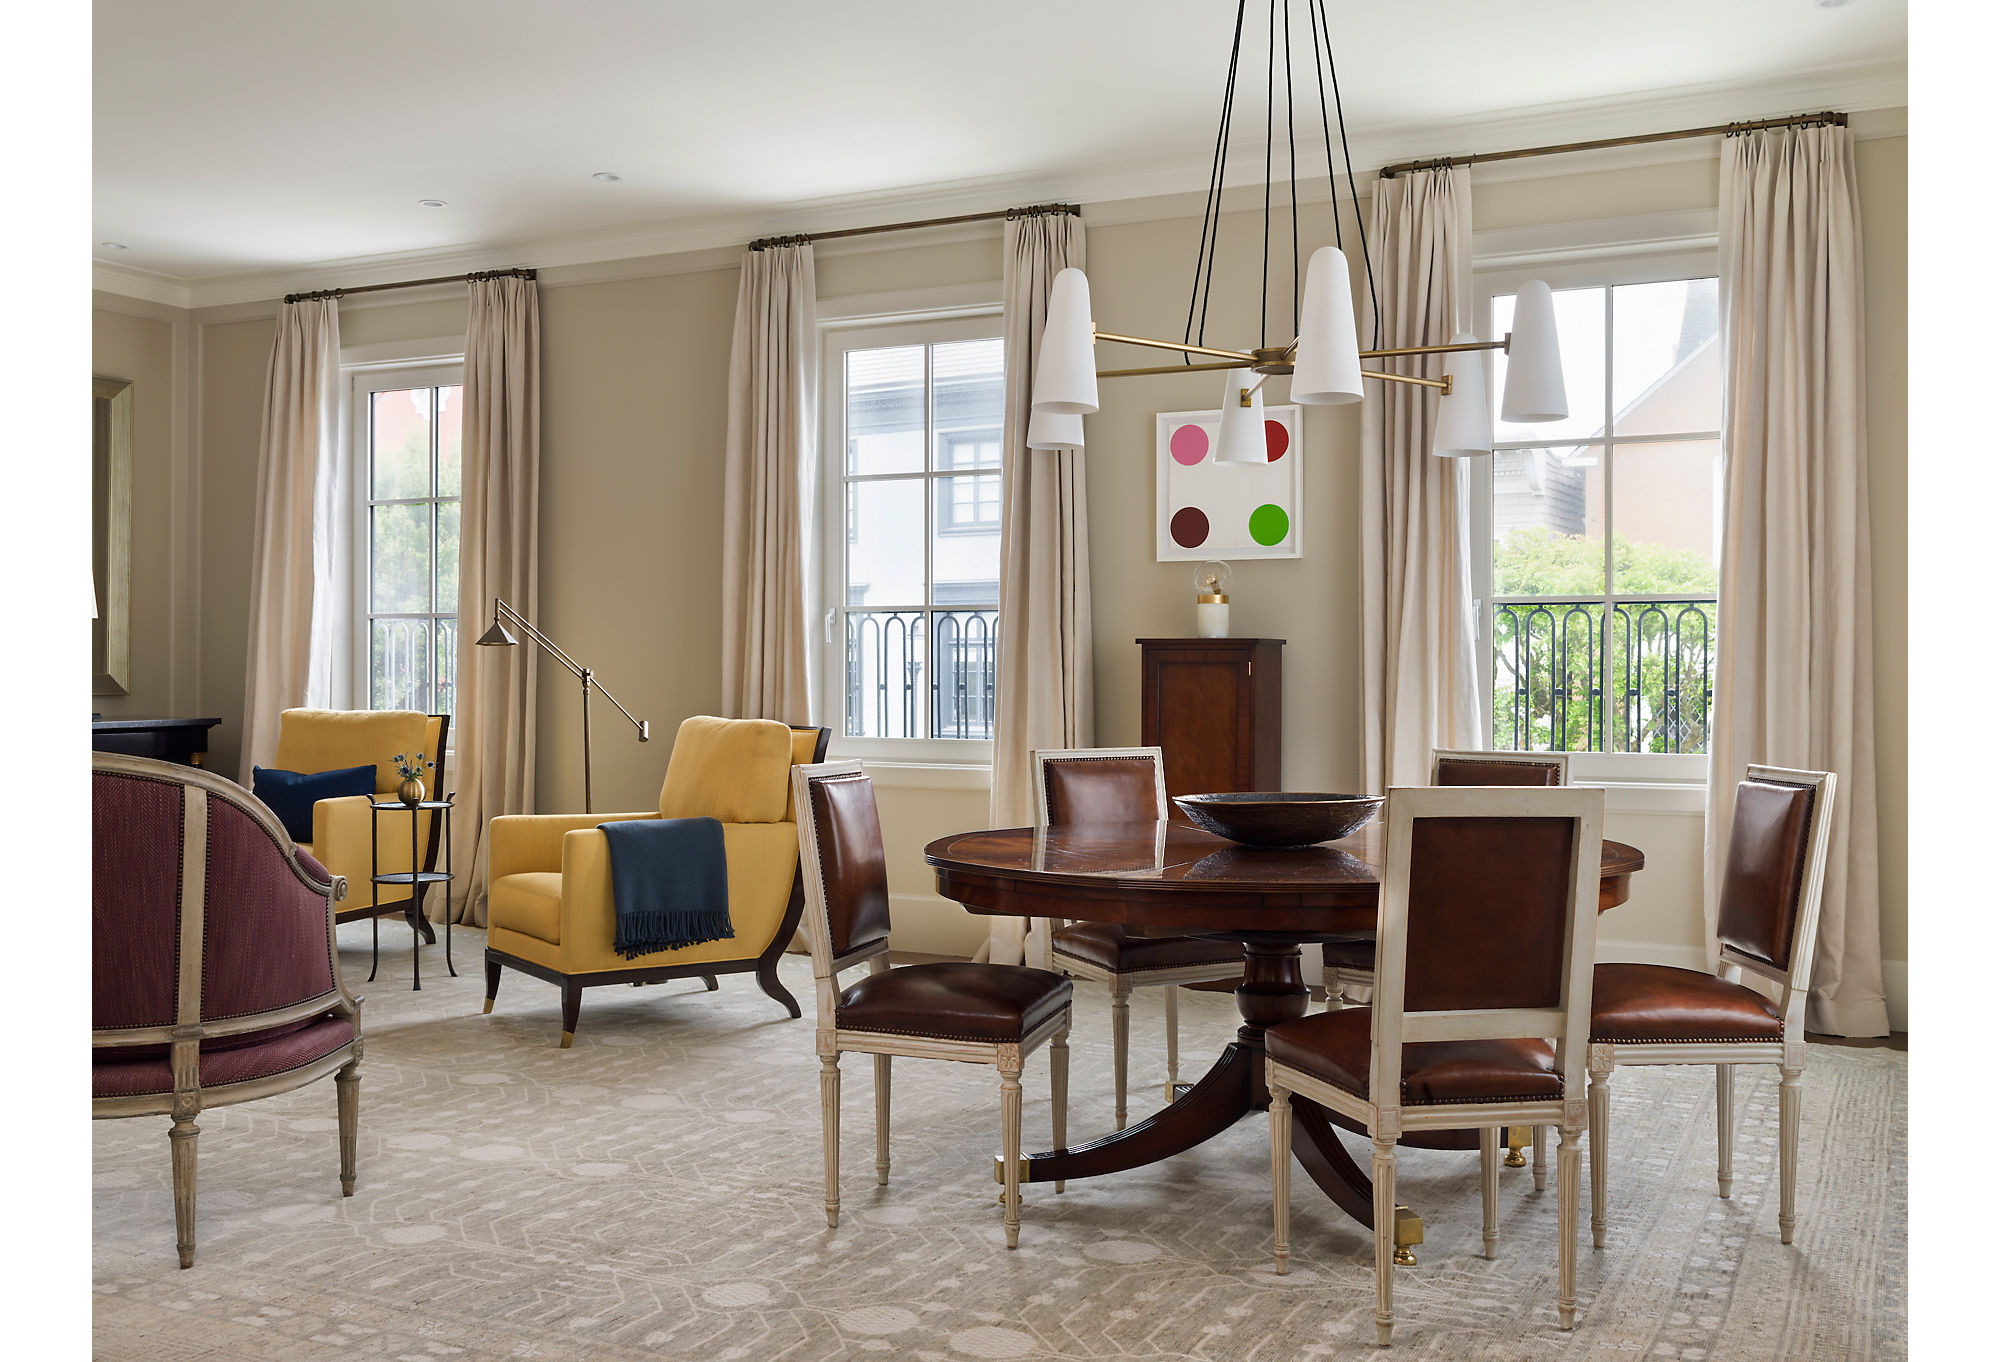 Heather included a more traditional aesthetic for the living room to counterbalance the modern art in the home. She juxtaposed pieces by Andy Warhol and Damien Hirst with Louis XVI chairs and dark wood furniture. (For similar chairs, see the Exeter Side Chair in Saddle Leather.)